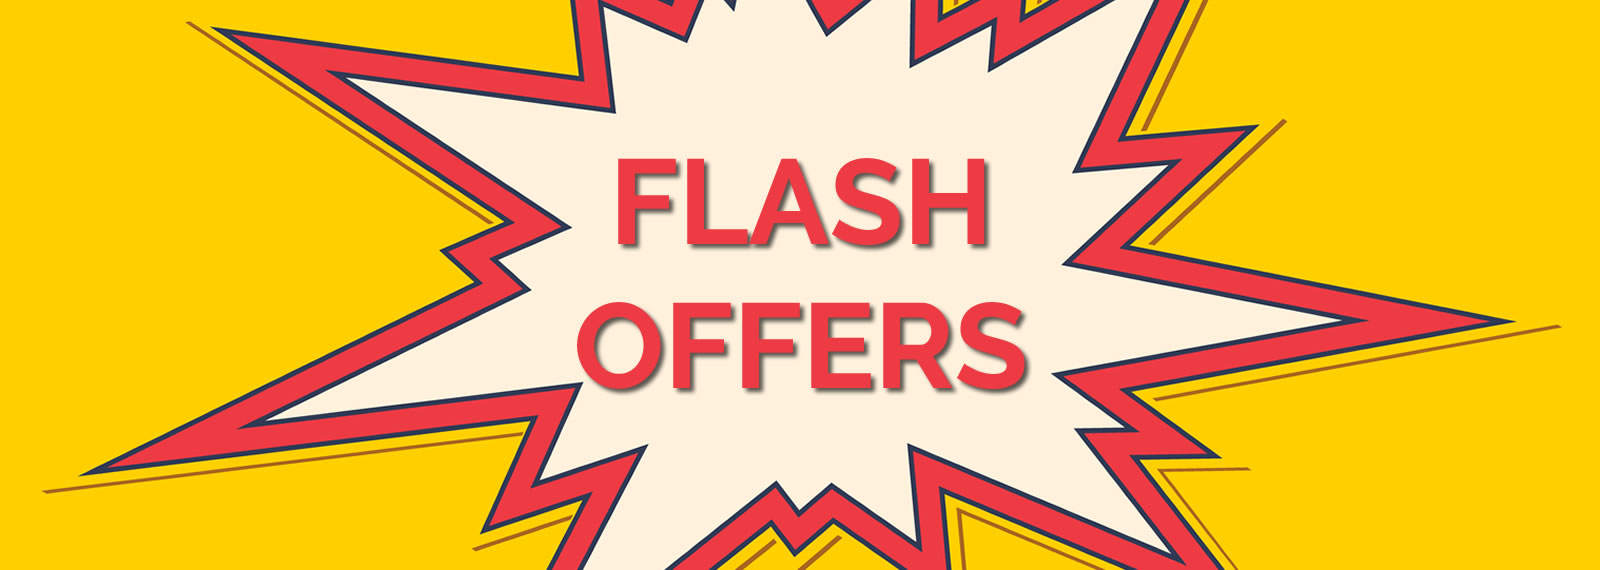 Flash Offers